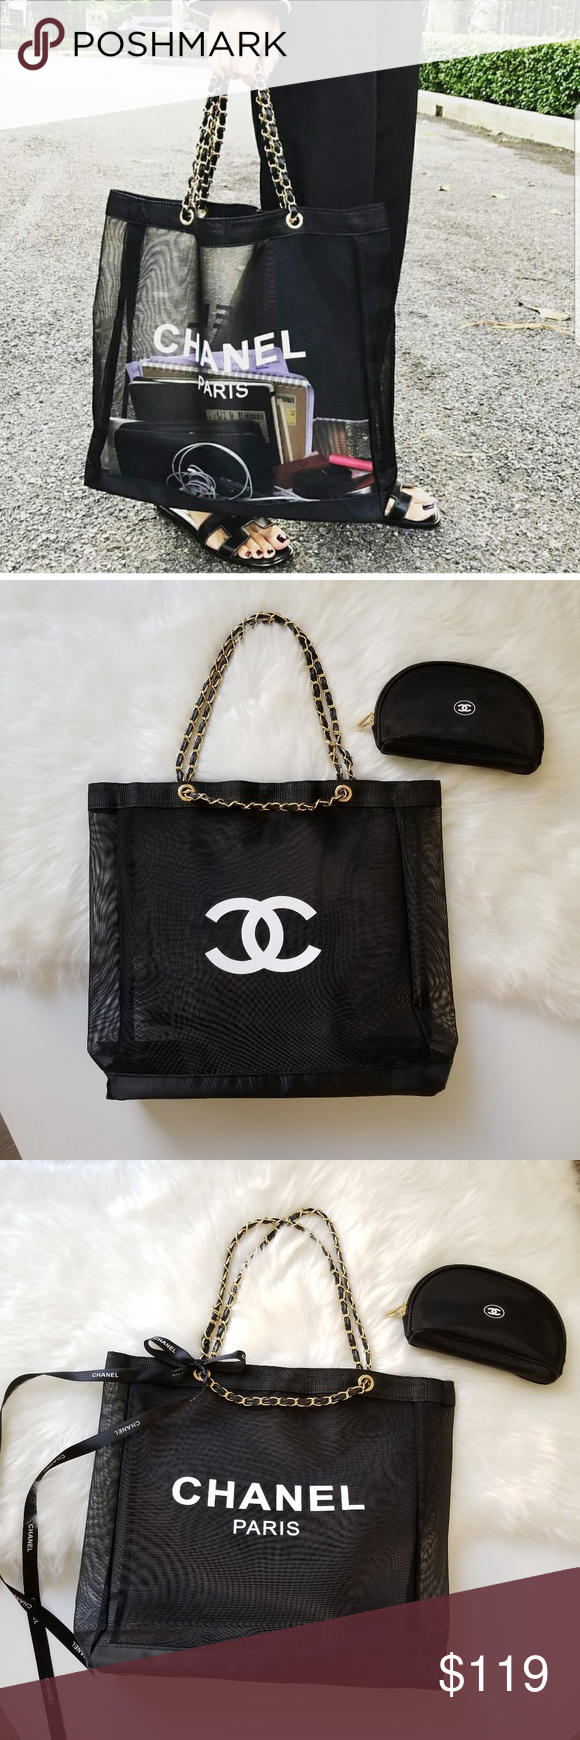 ccef774d31a9 VIP gift mesh tote and cosmetics bag set. Brand new. CHANEL VIP Black Mesh  Tote Bag and cosmetics bag. Faux Leather Chain(Gold-Color Chain)  Size(approx)  ...